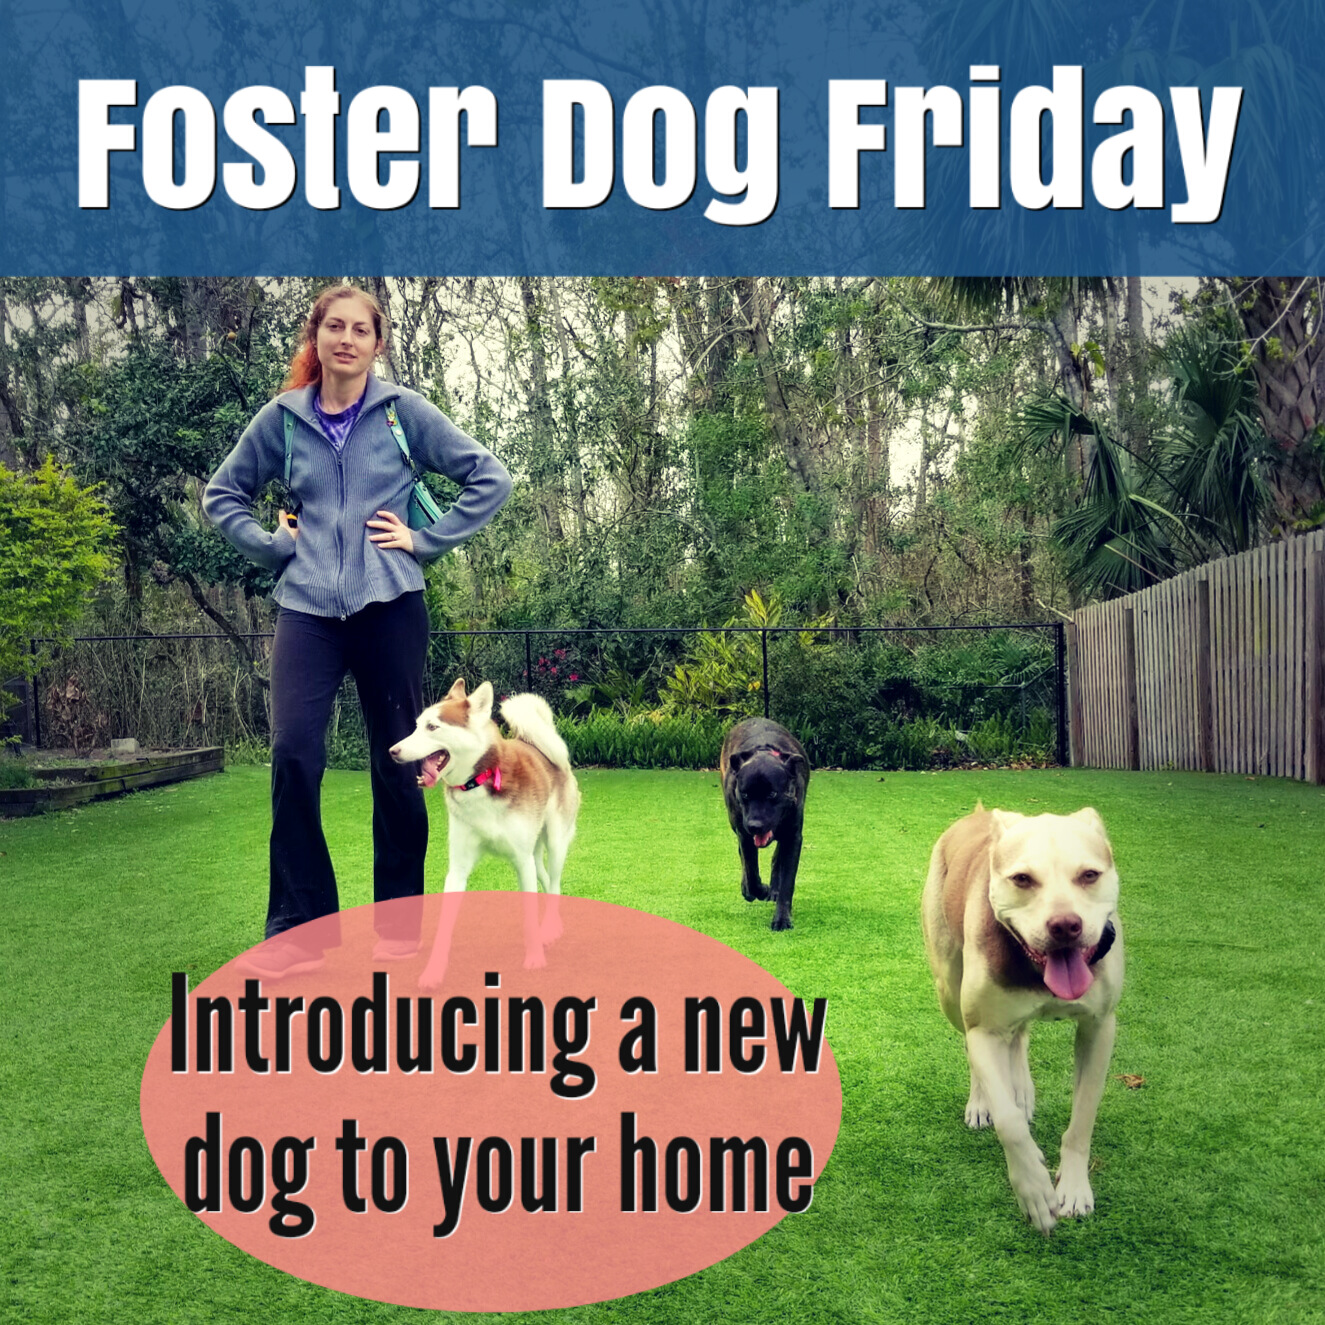 Foster Dog Friday